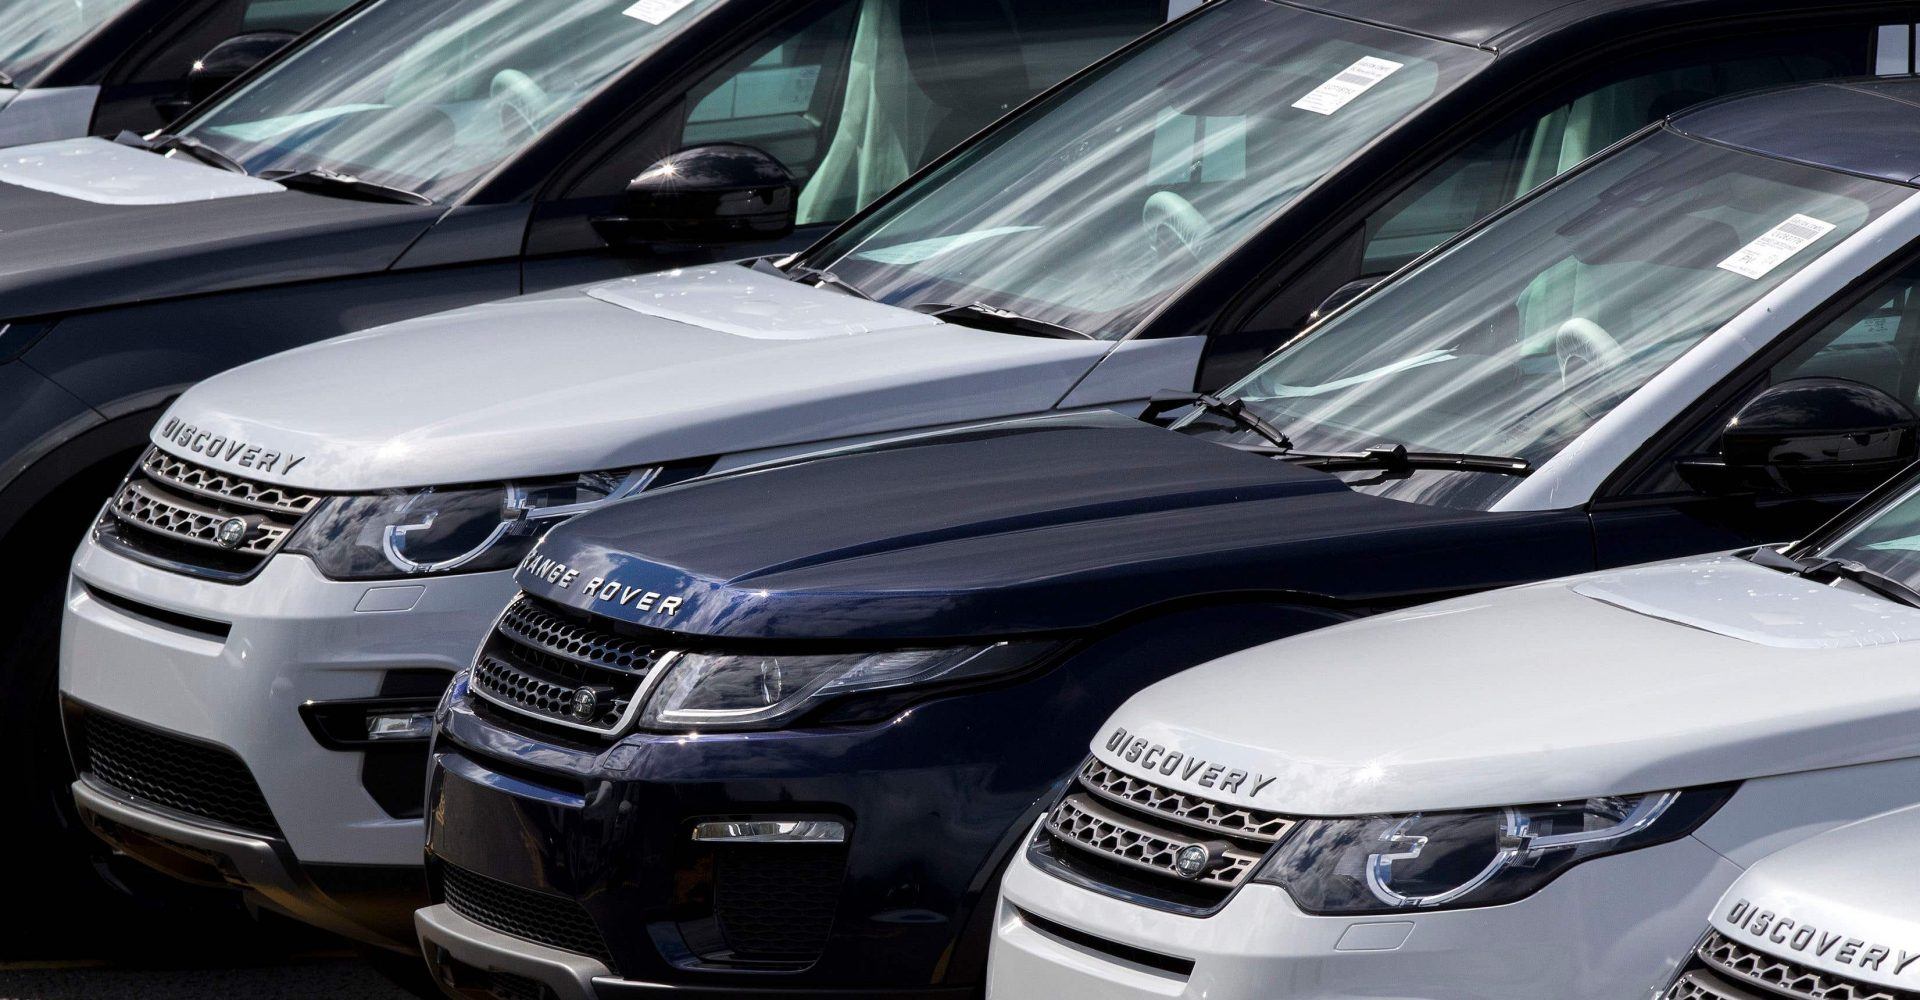 Auto Trader sees profits go into reverse, but shift online boosts outlook